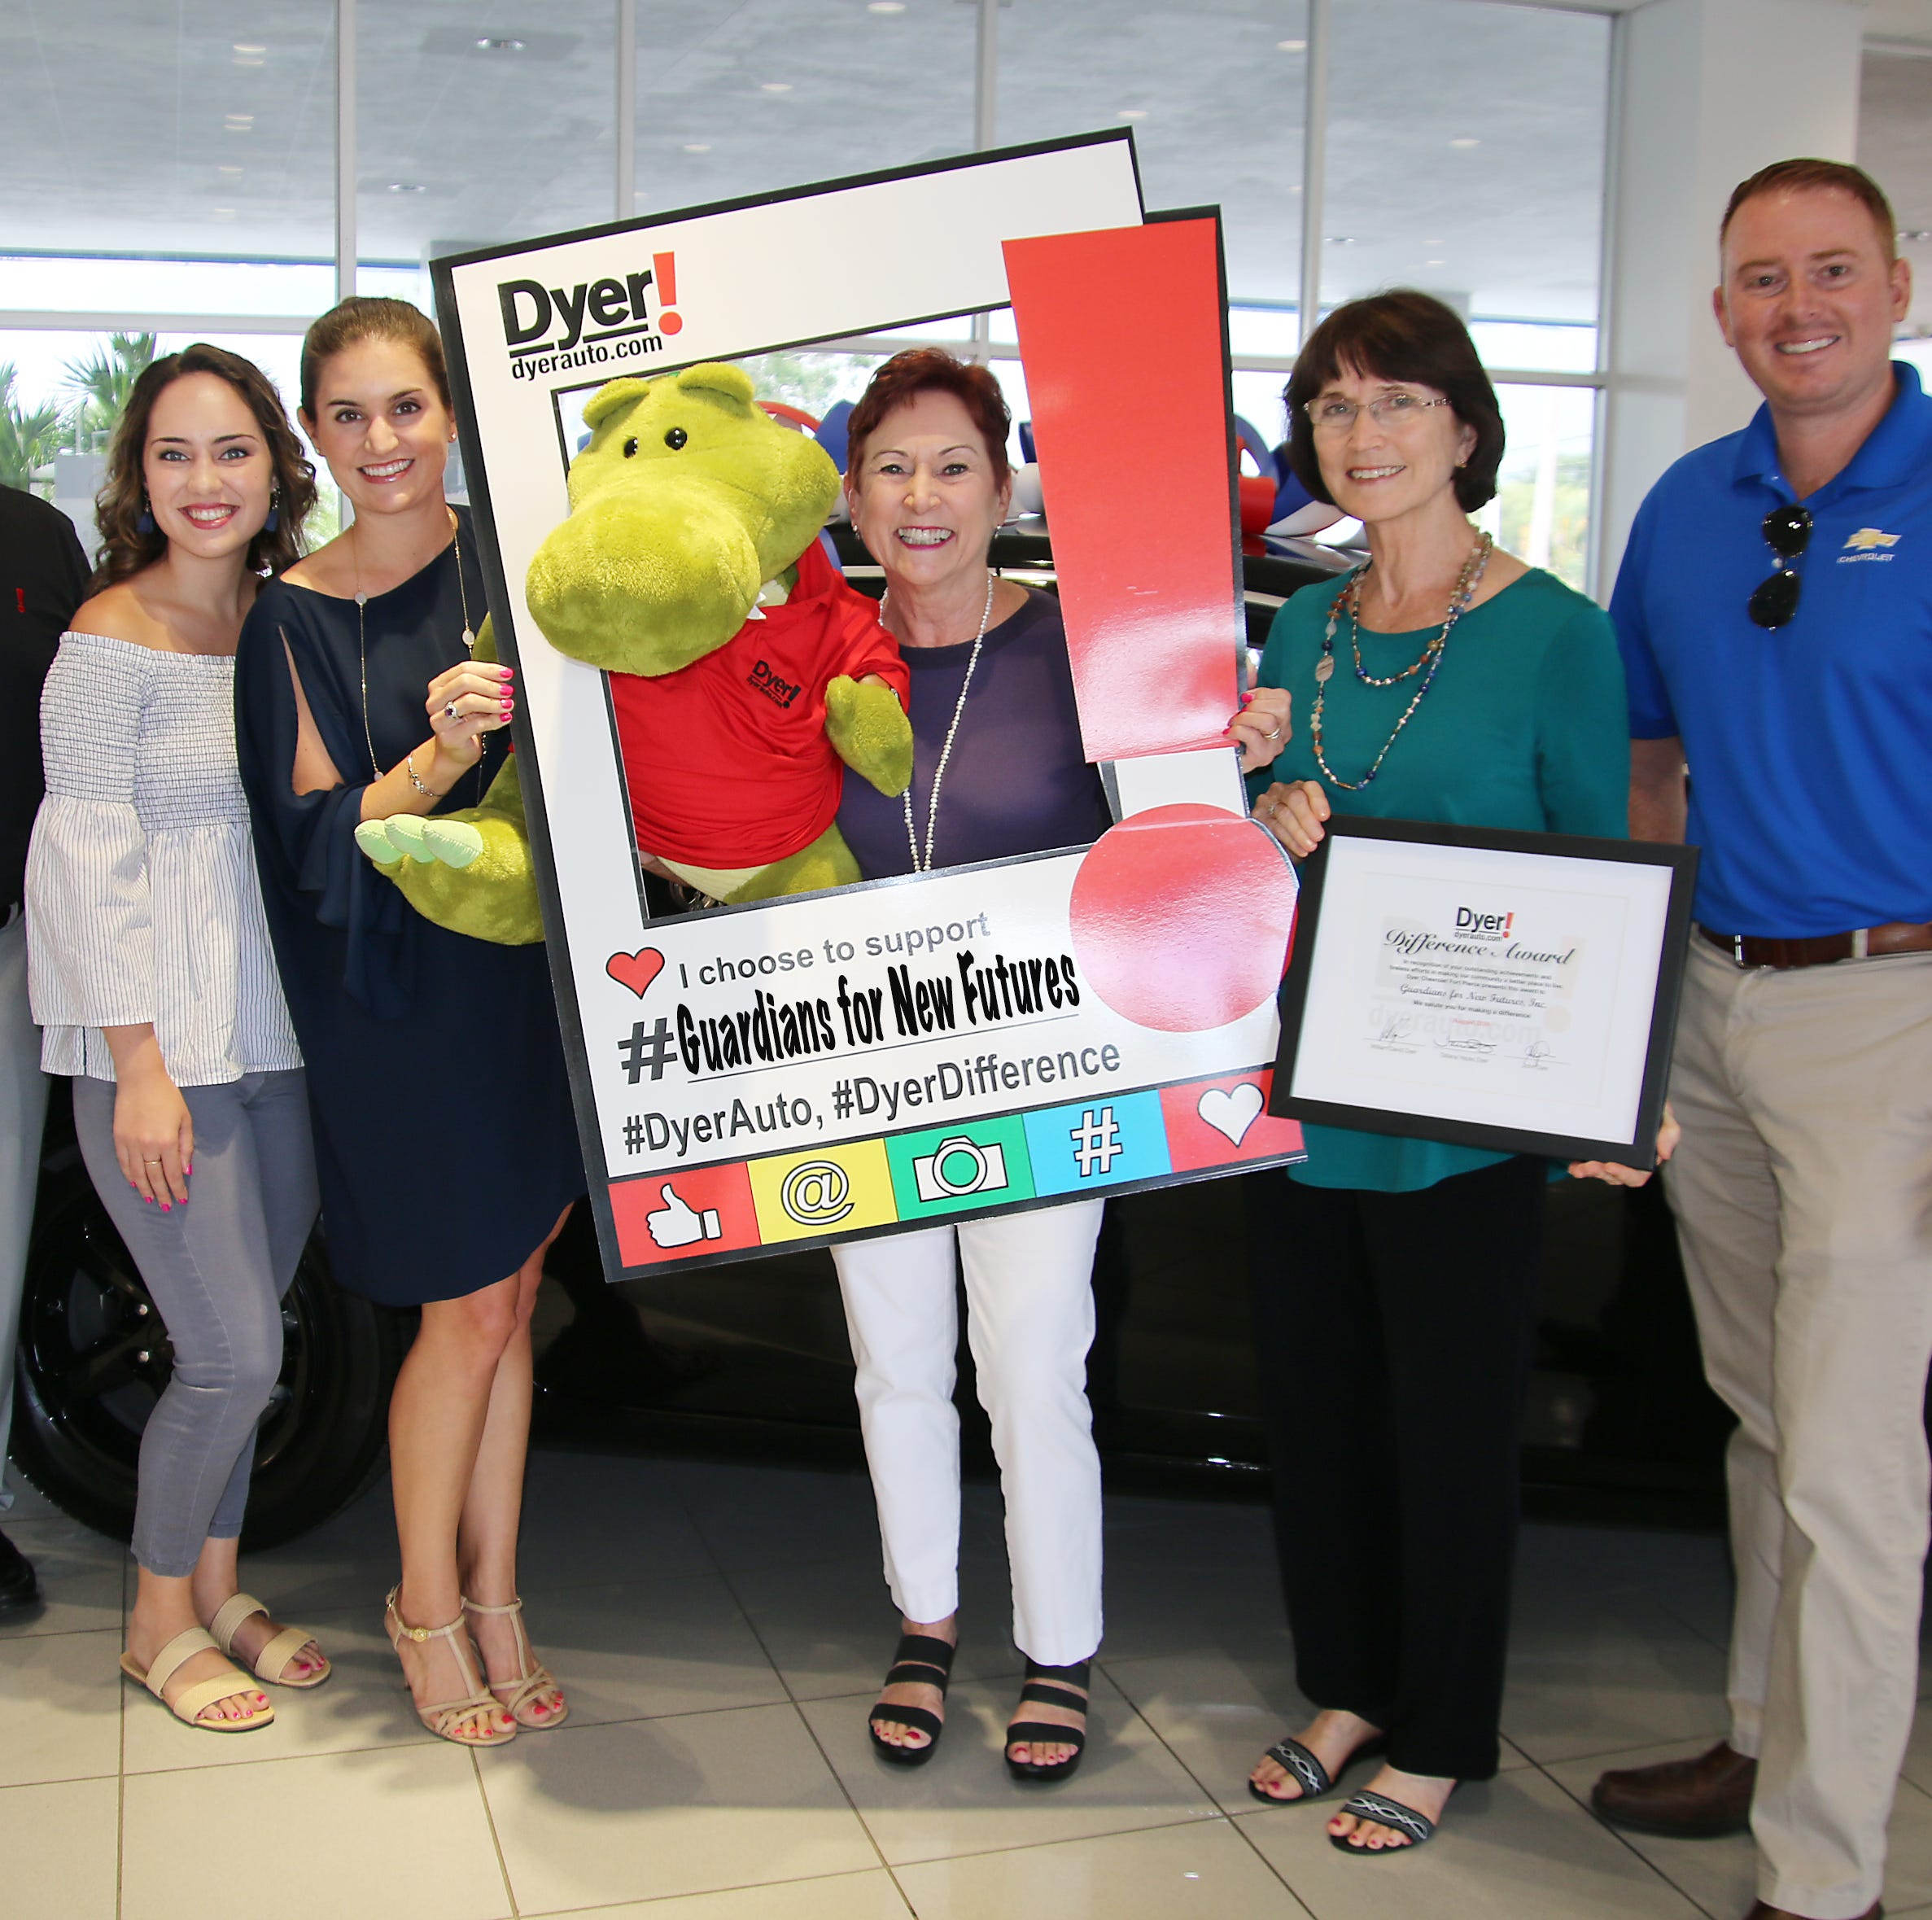 Dyer Automotive Group putting new spin on August's Dyer Difference Award: You pick a charity!